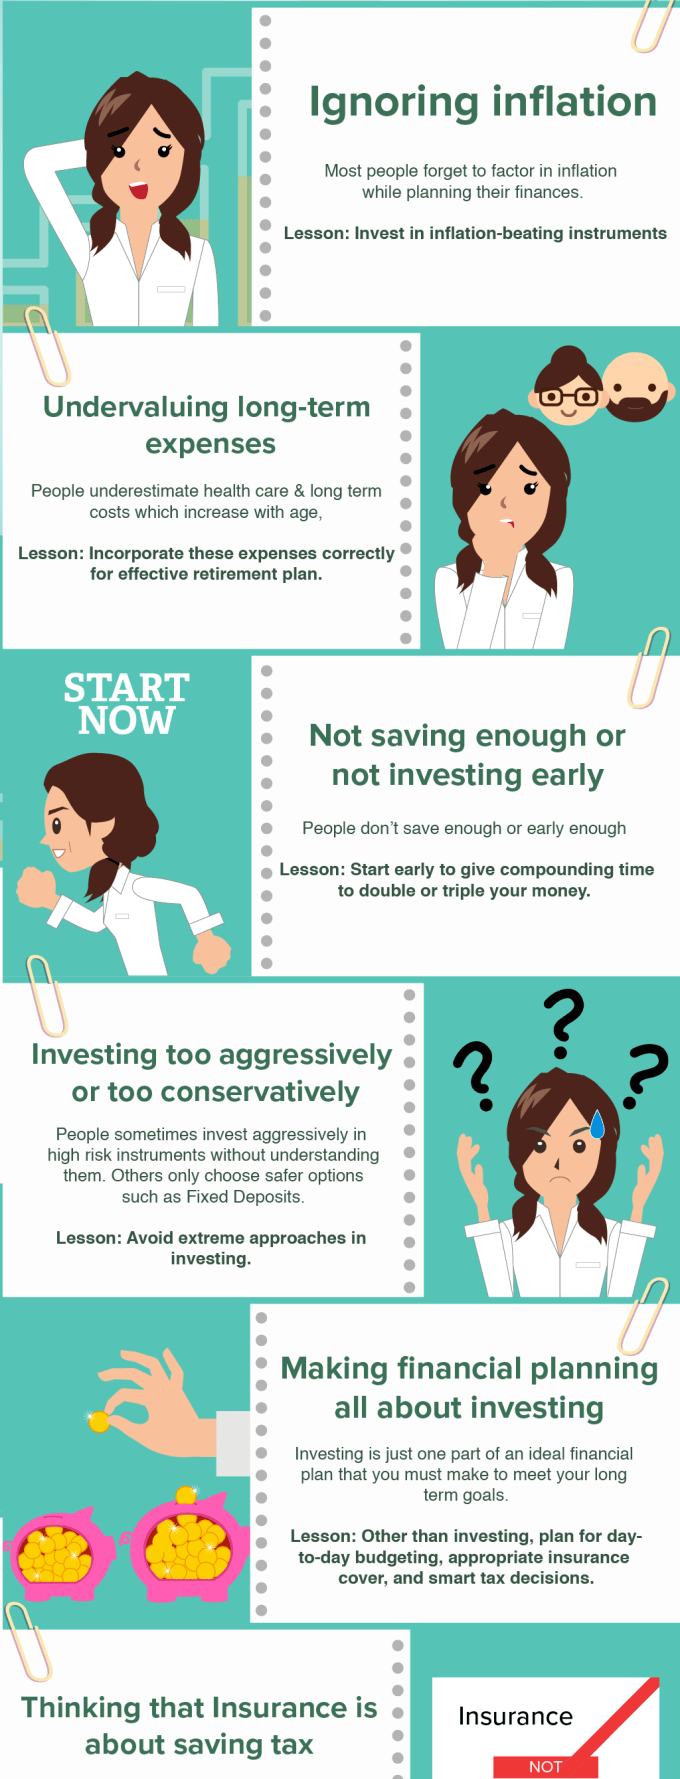 6 Most Common Financial Mistakes